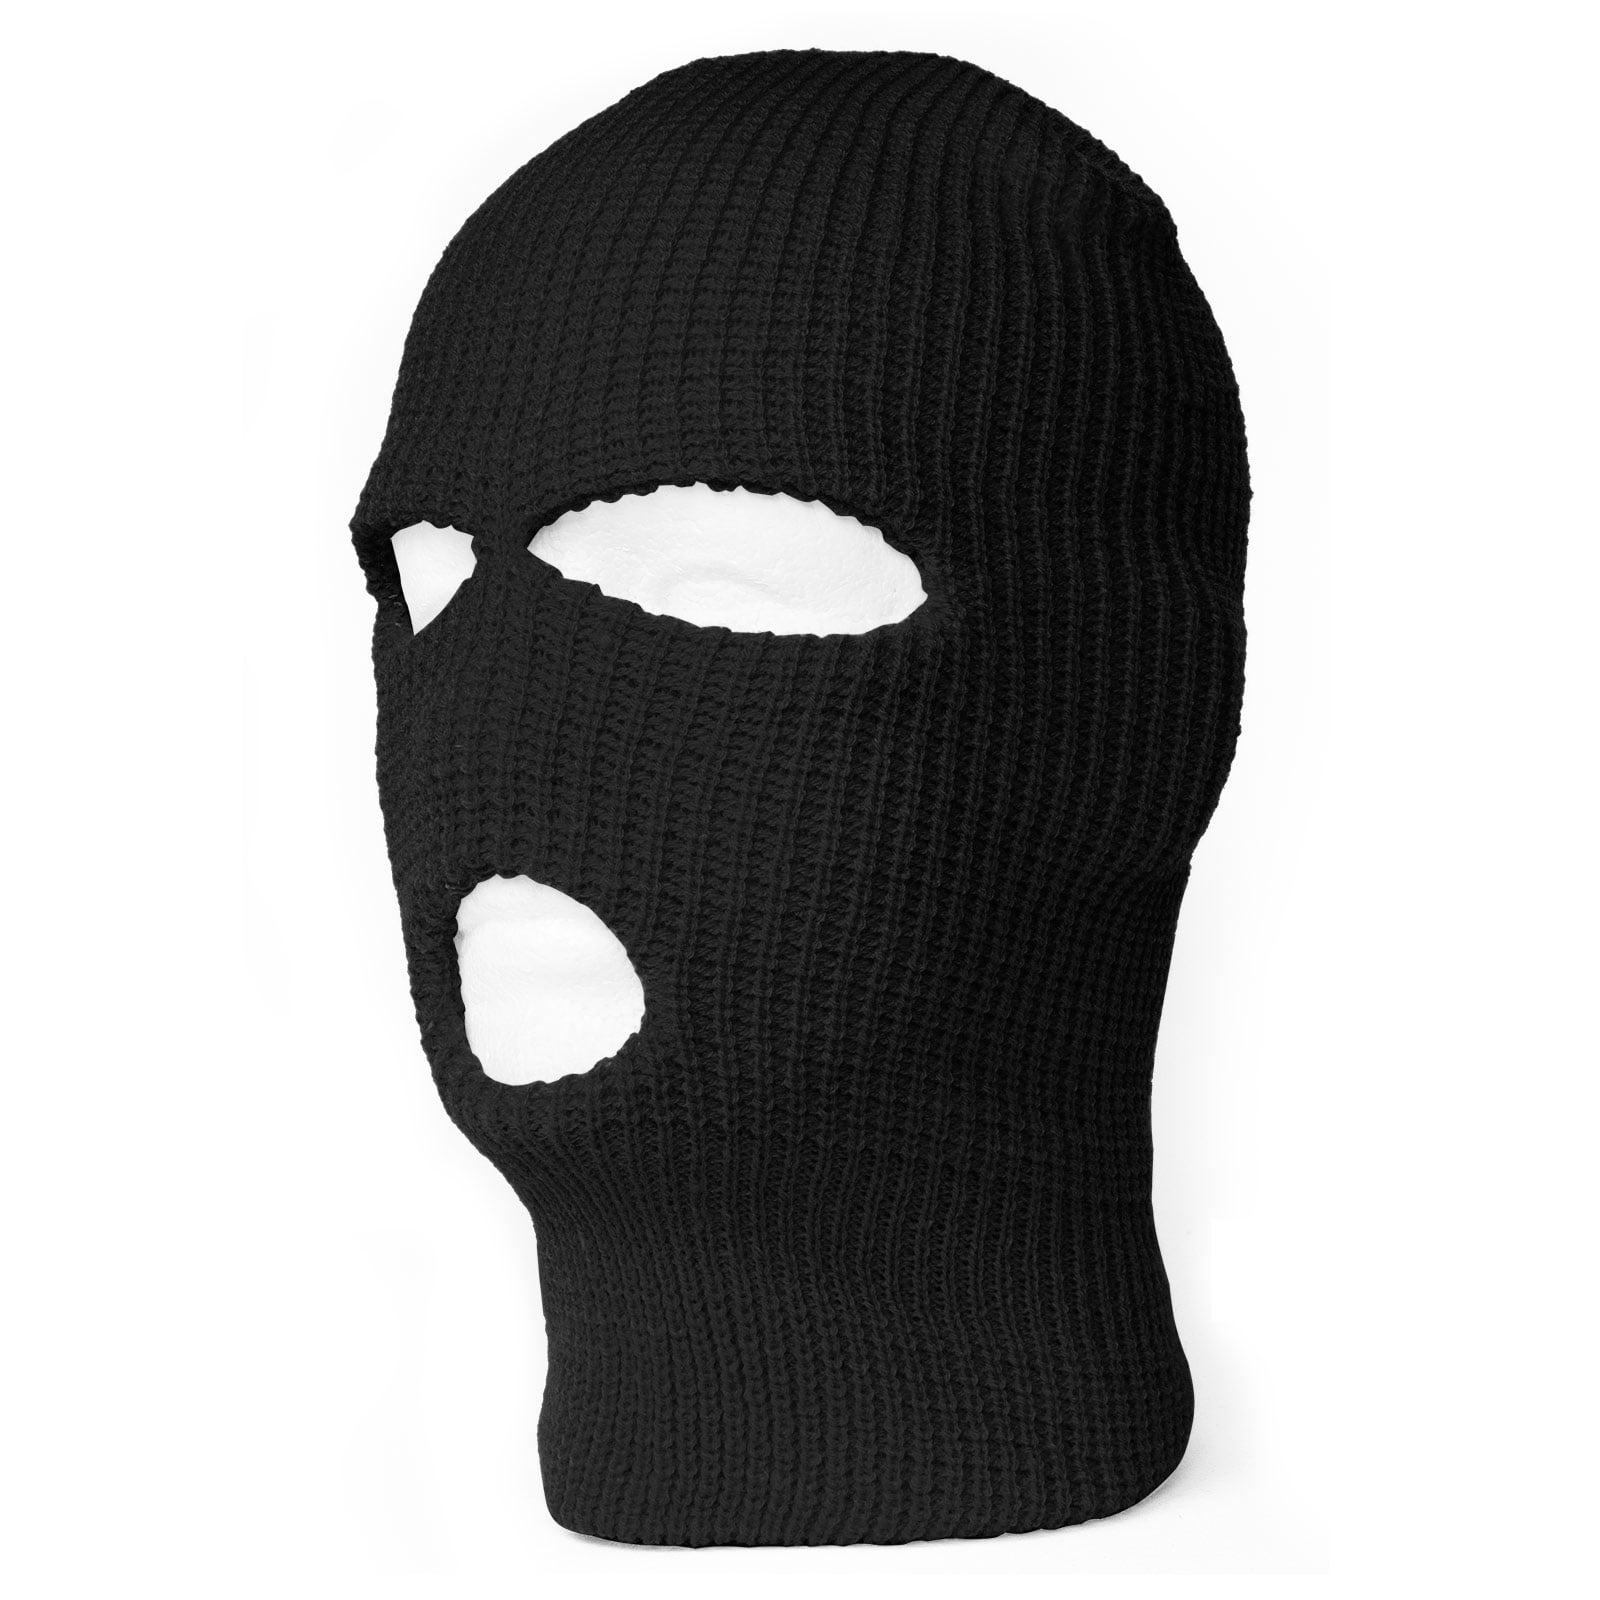 3 Hole Winter Ski Mask- Black by